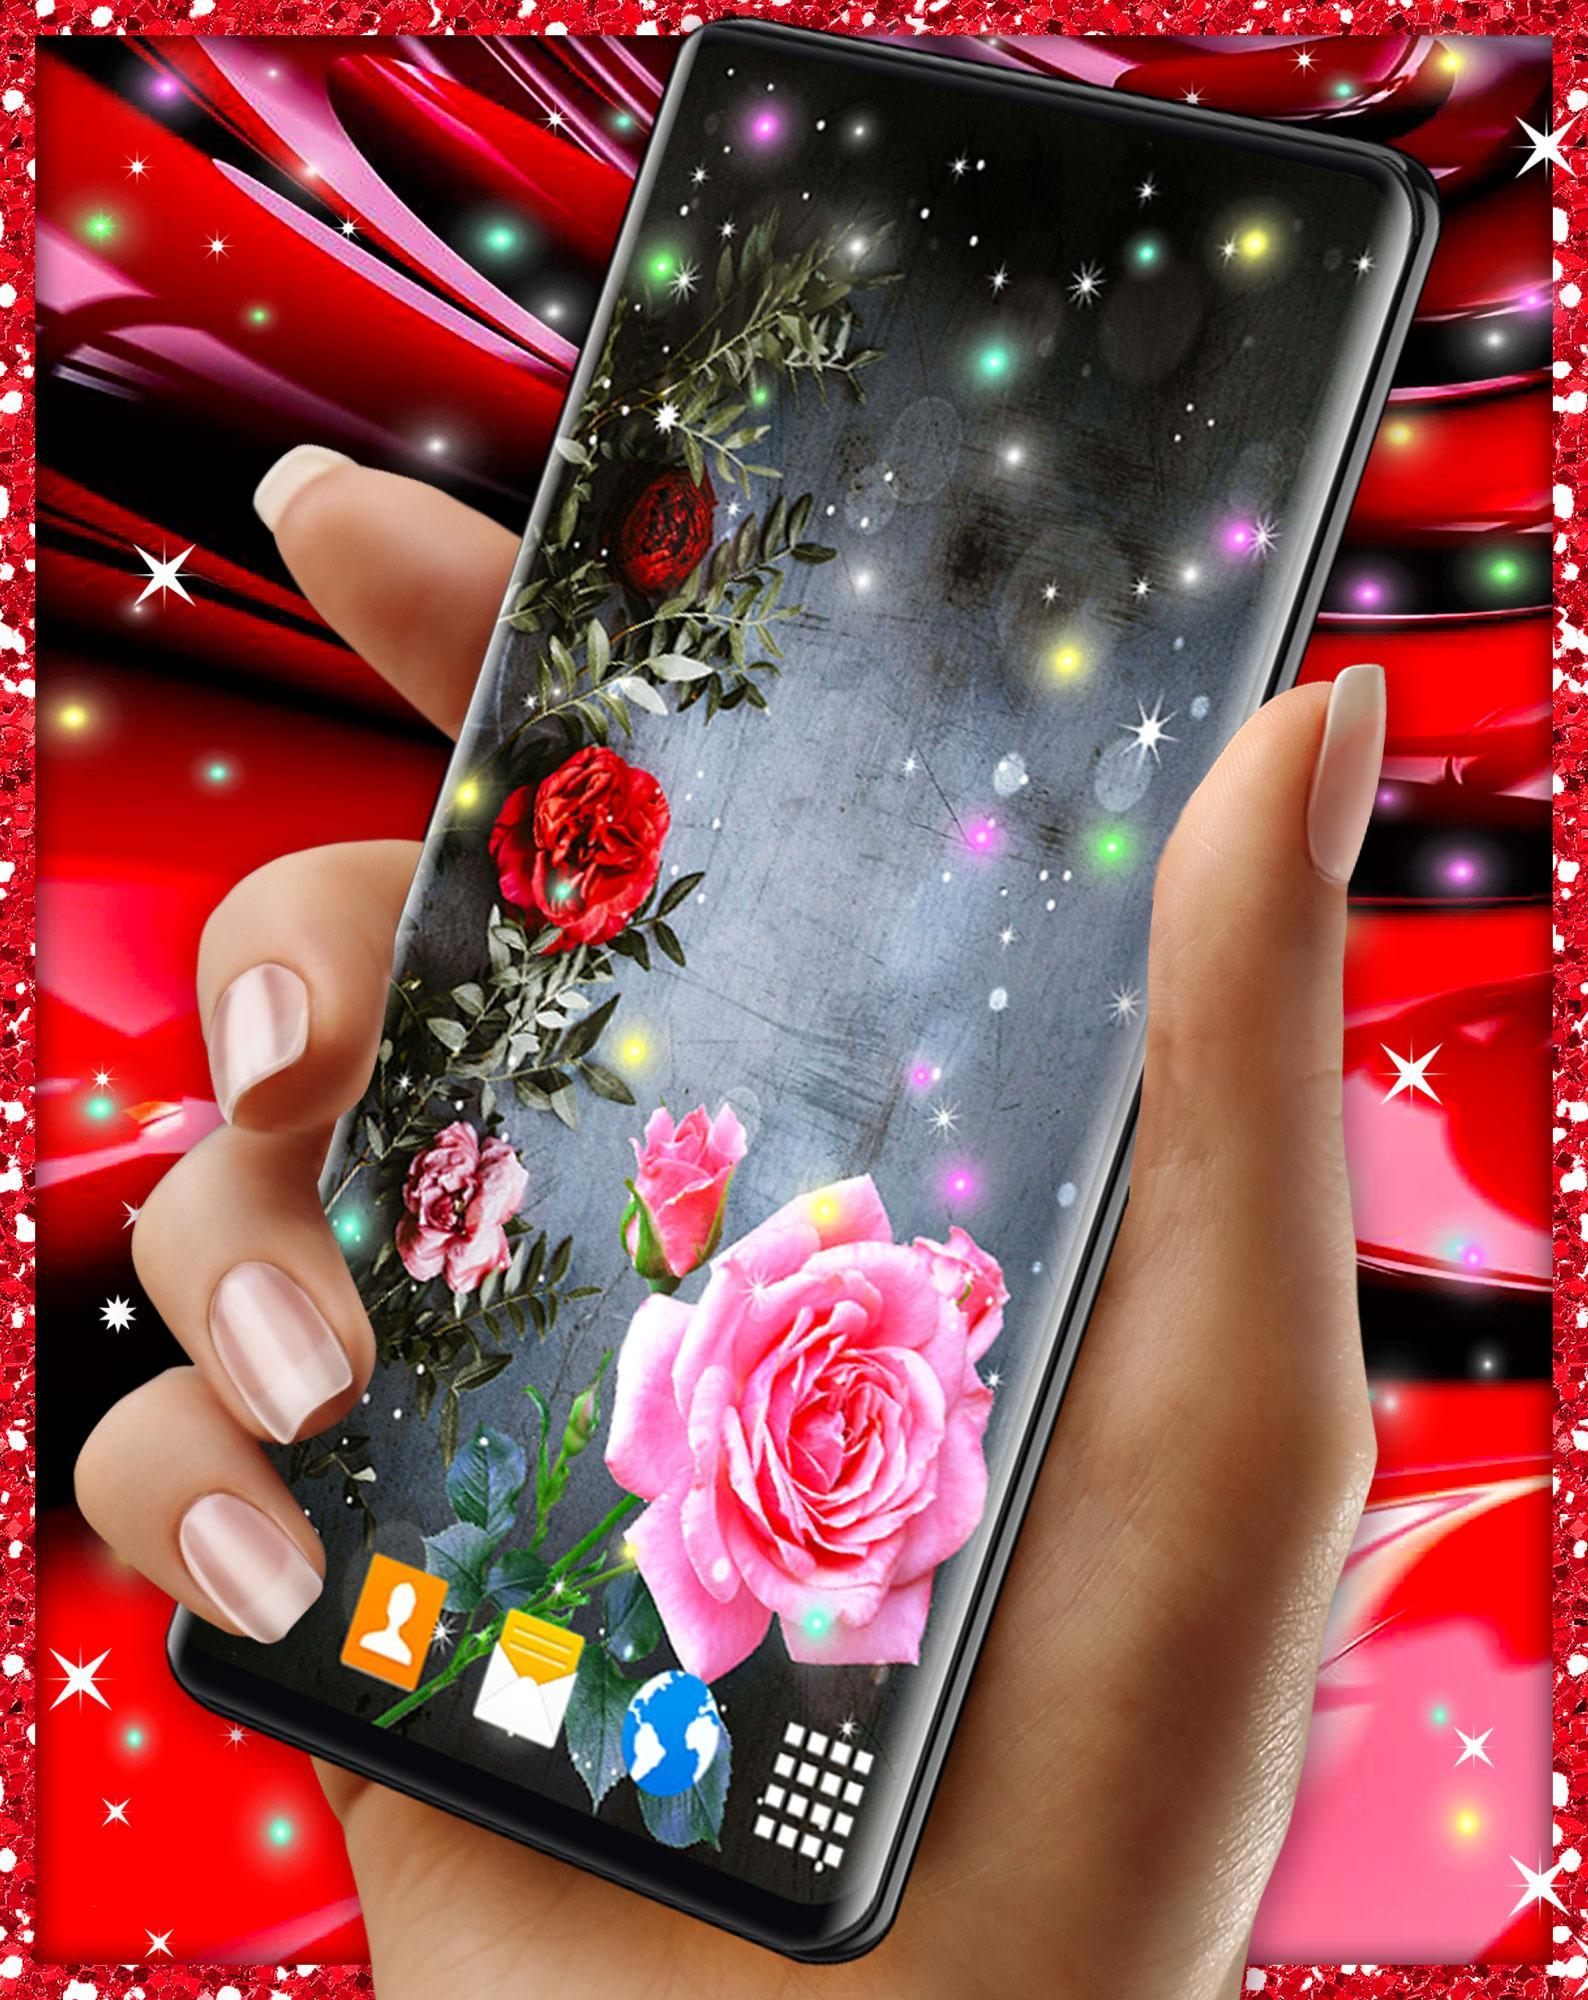 Hd Wallpaper The Best Free Live Wallpapers For Android Apk Download